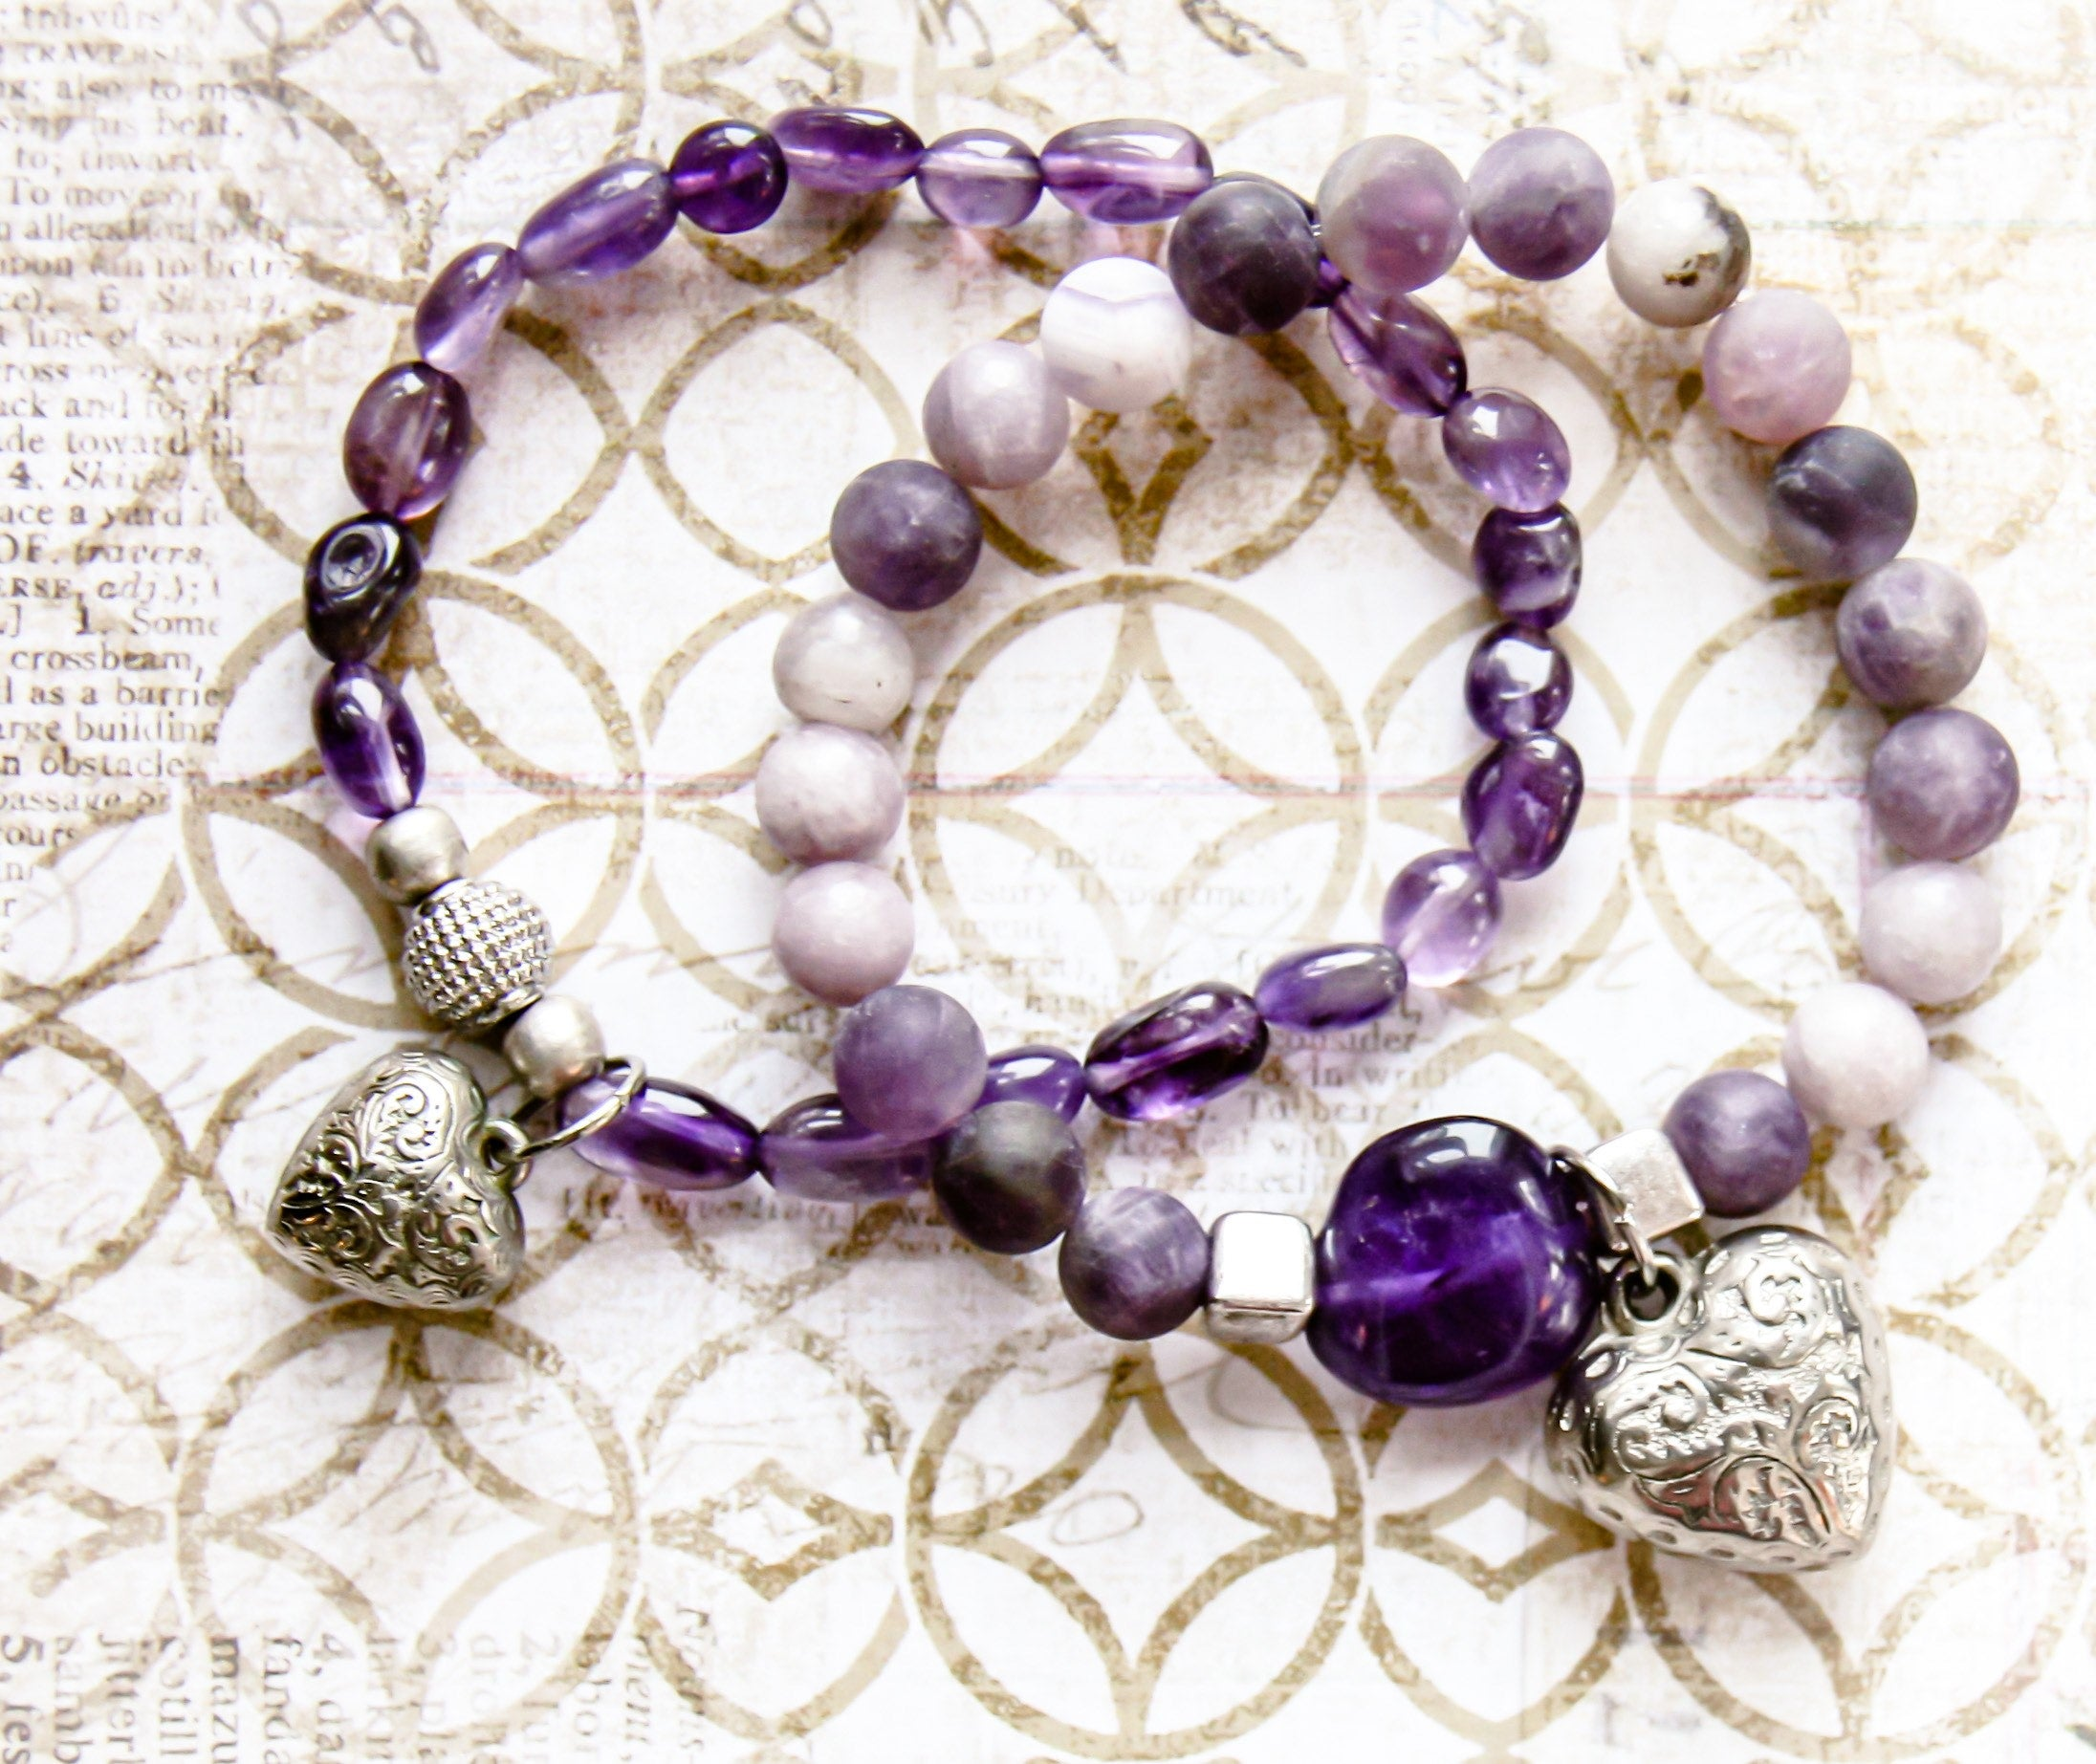 Amethyst hand-made jewelry